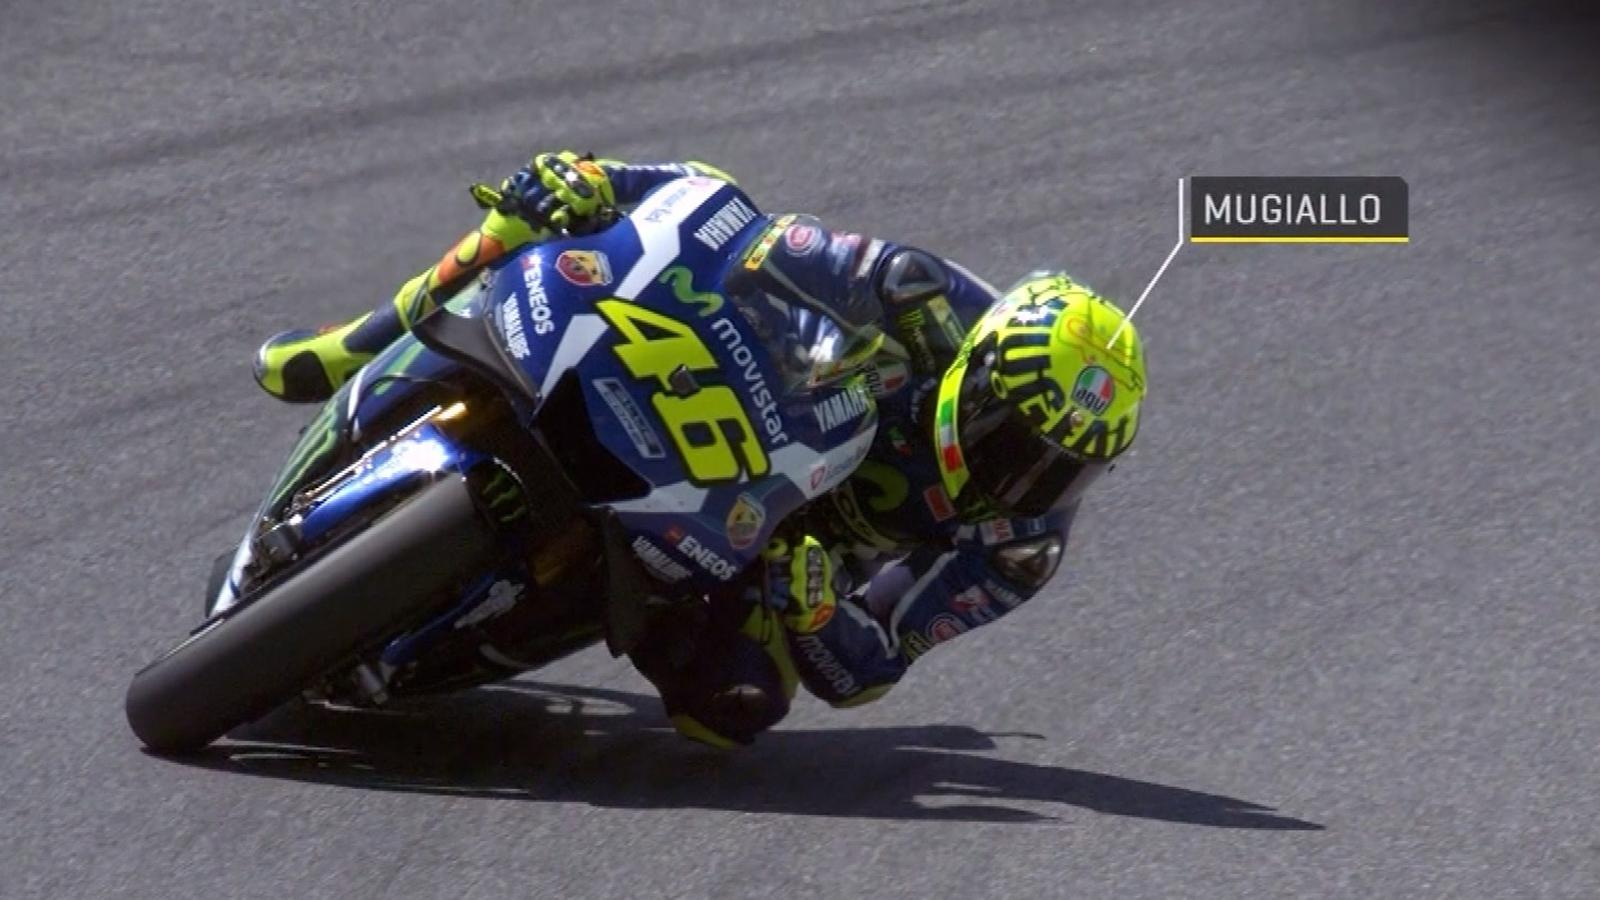 video motogp valentino rossi mit neuem helm in mugello. Black Bedroom Furniture Sets. Home Design Ideas